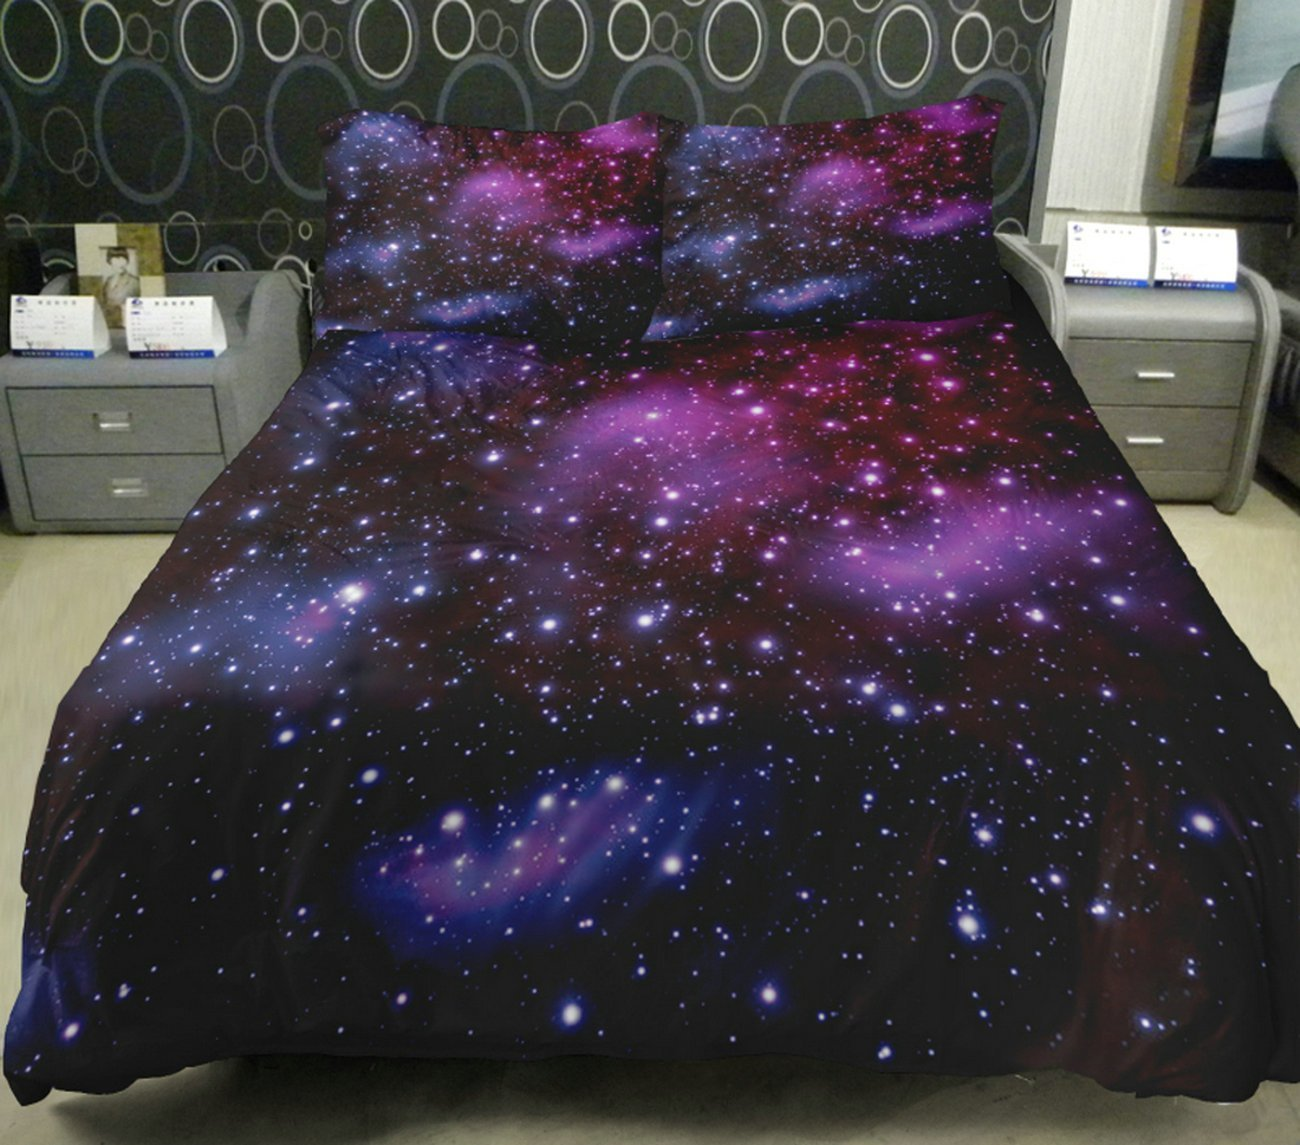 Amazon.com - Galaxy Quilt Cover Galaxy Duvet Cover Galaxy Sheets Space Sheets Outer Space Bedding Set Bedspread with 2 Matching Pillow Covers (FULL) -